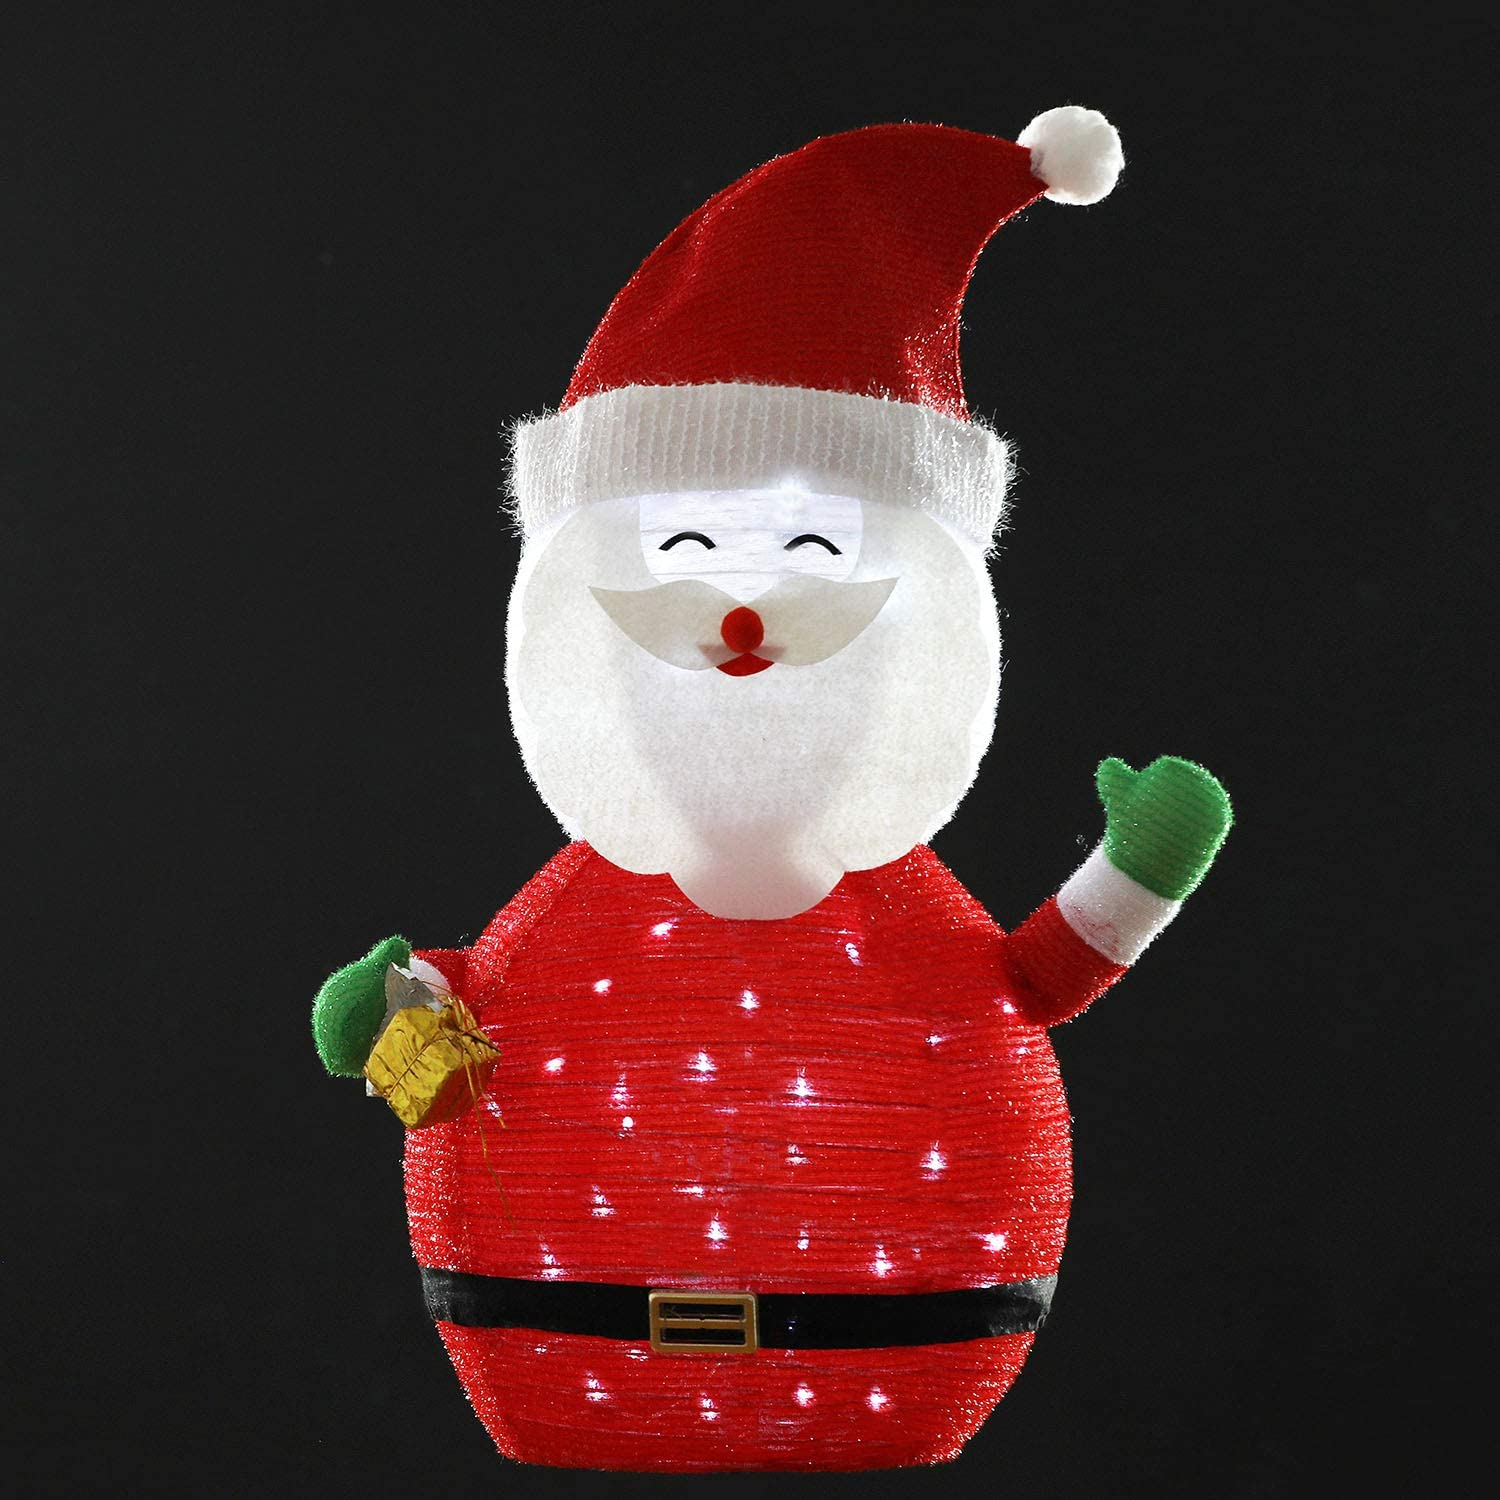 KPROE Portable Pre Lit LED Lighted Battery Operated Santa Claus Christmas Lawn Decoration Indoor Outdoor Holiday 27 5 Inches